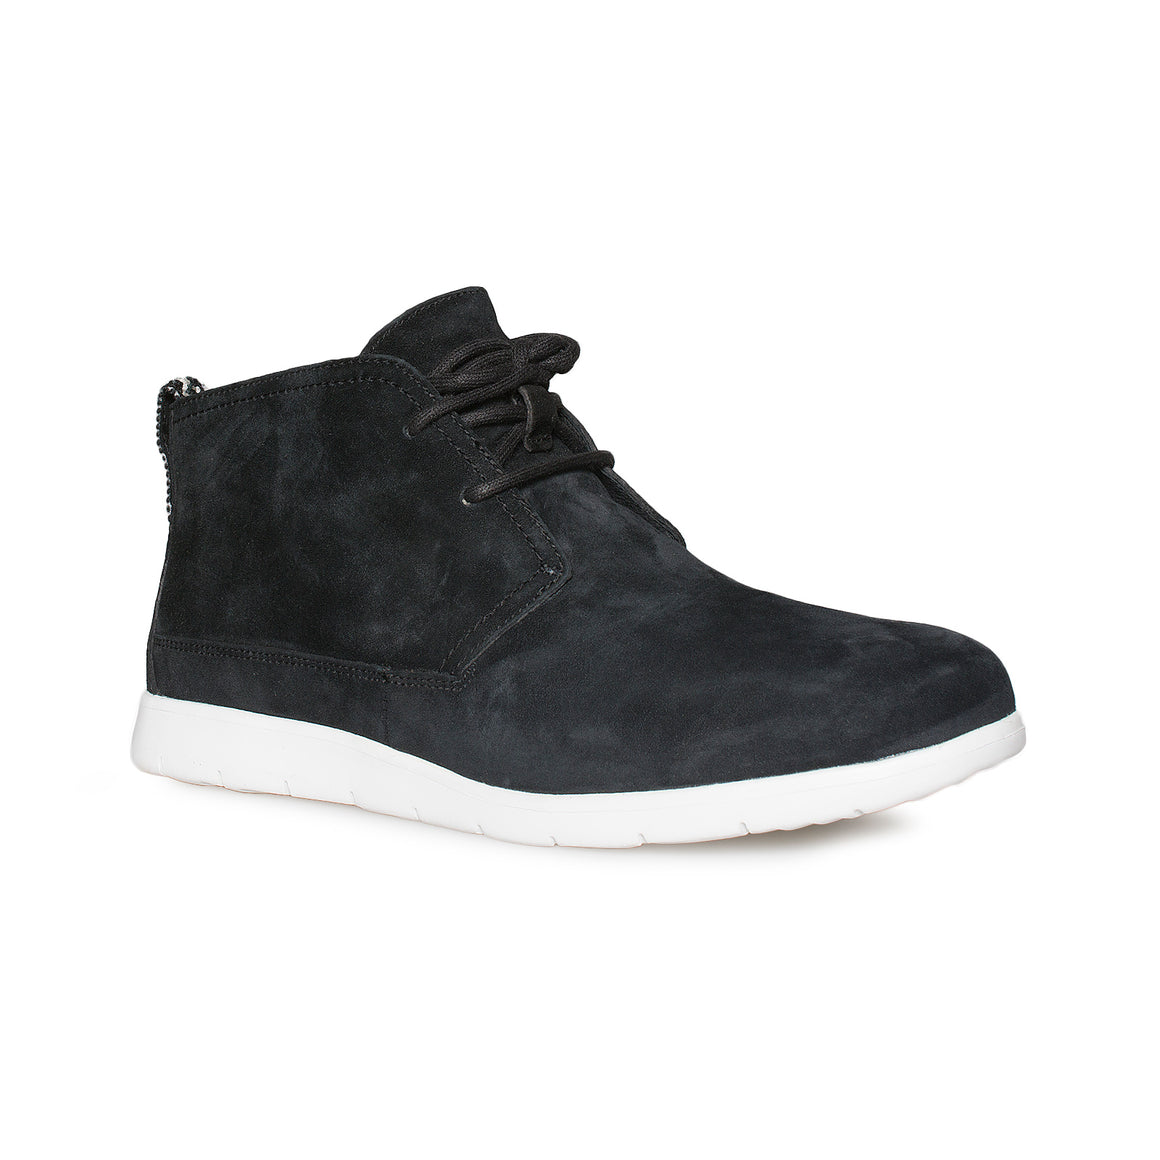 UGG Freamon Black Shoes - Men's